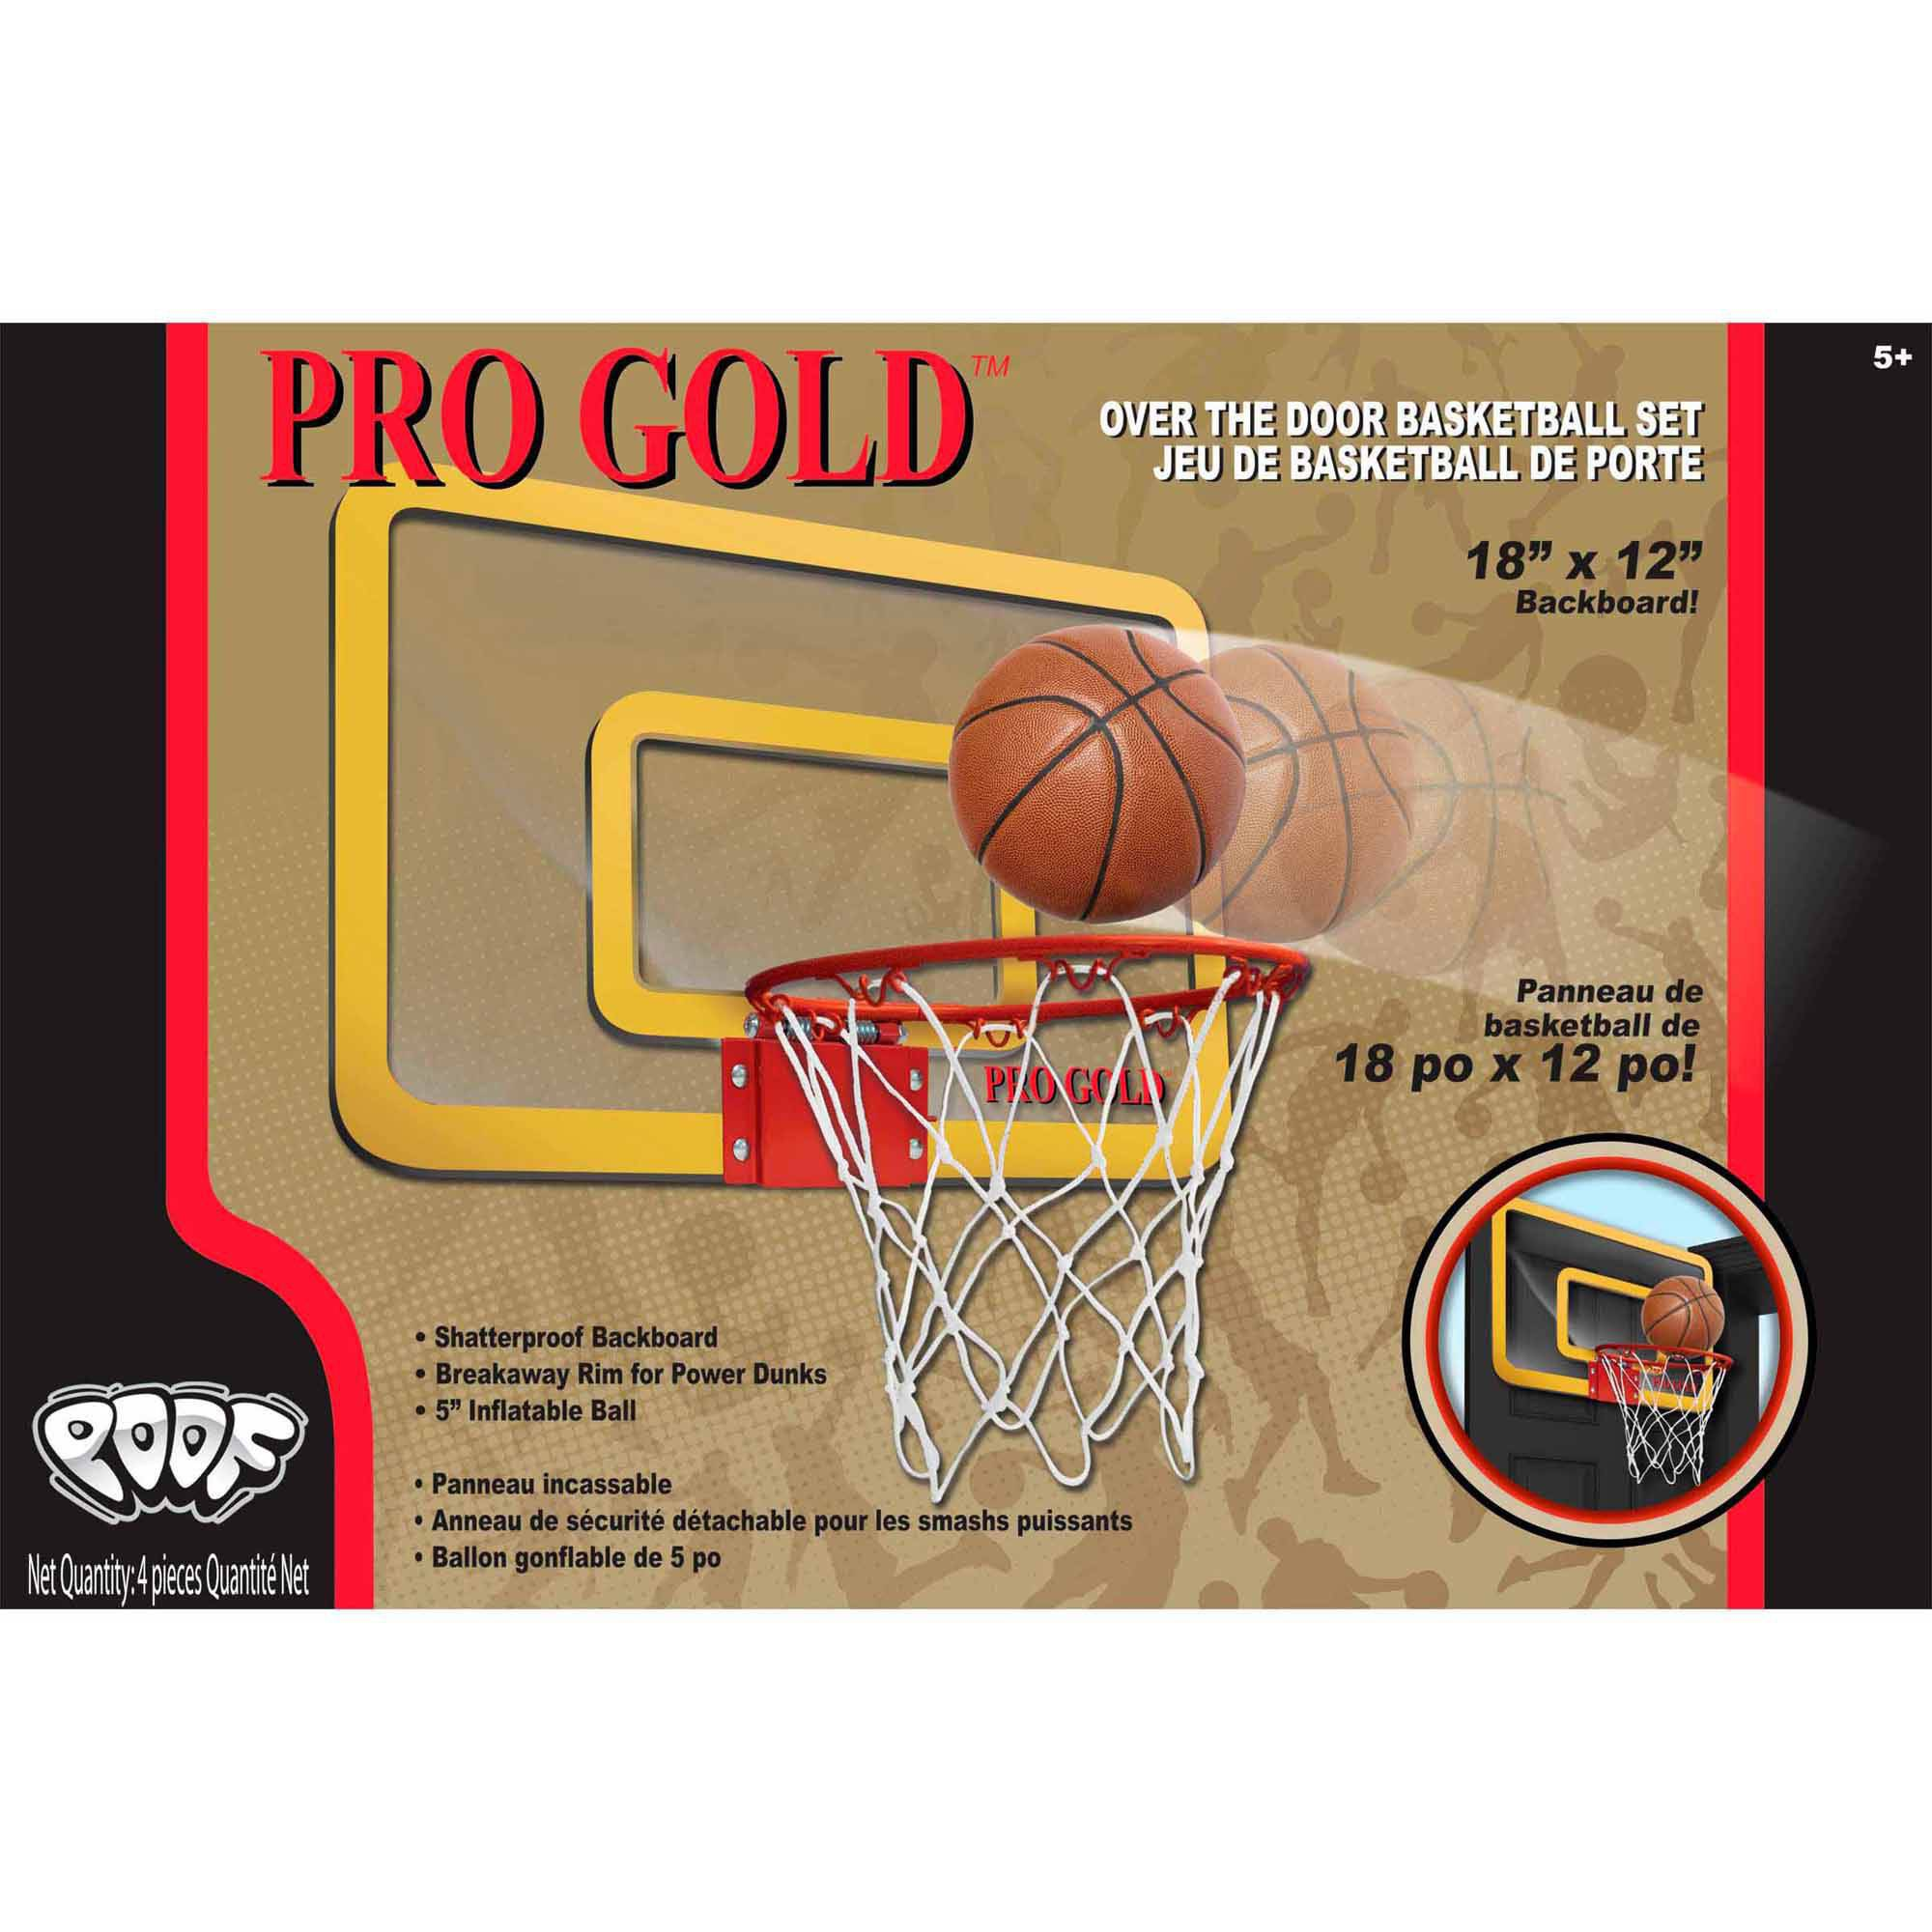 """Pro Gold 18"""" Over The Door Basketball Set by POOF-Slinky, Inc."""